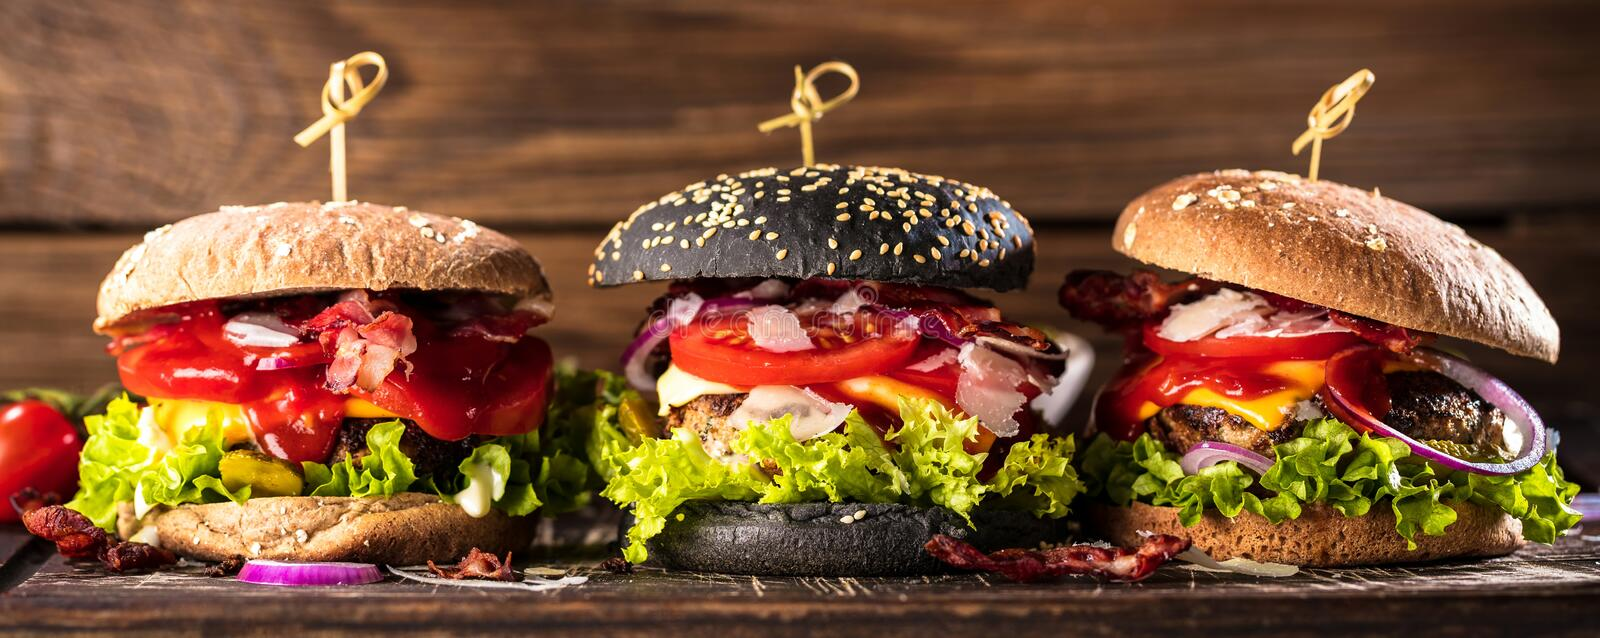 Black burger with meat patty, cheese, tomatoes, mayonnaise. Dark wooden rustic table. Modern fast food lunch.  royalty free stock photography